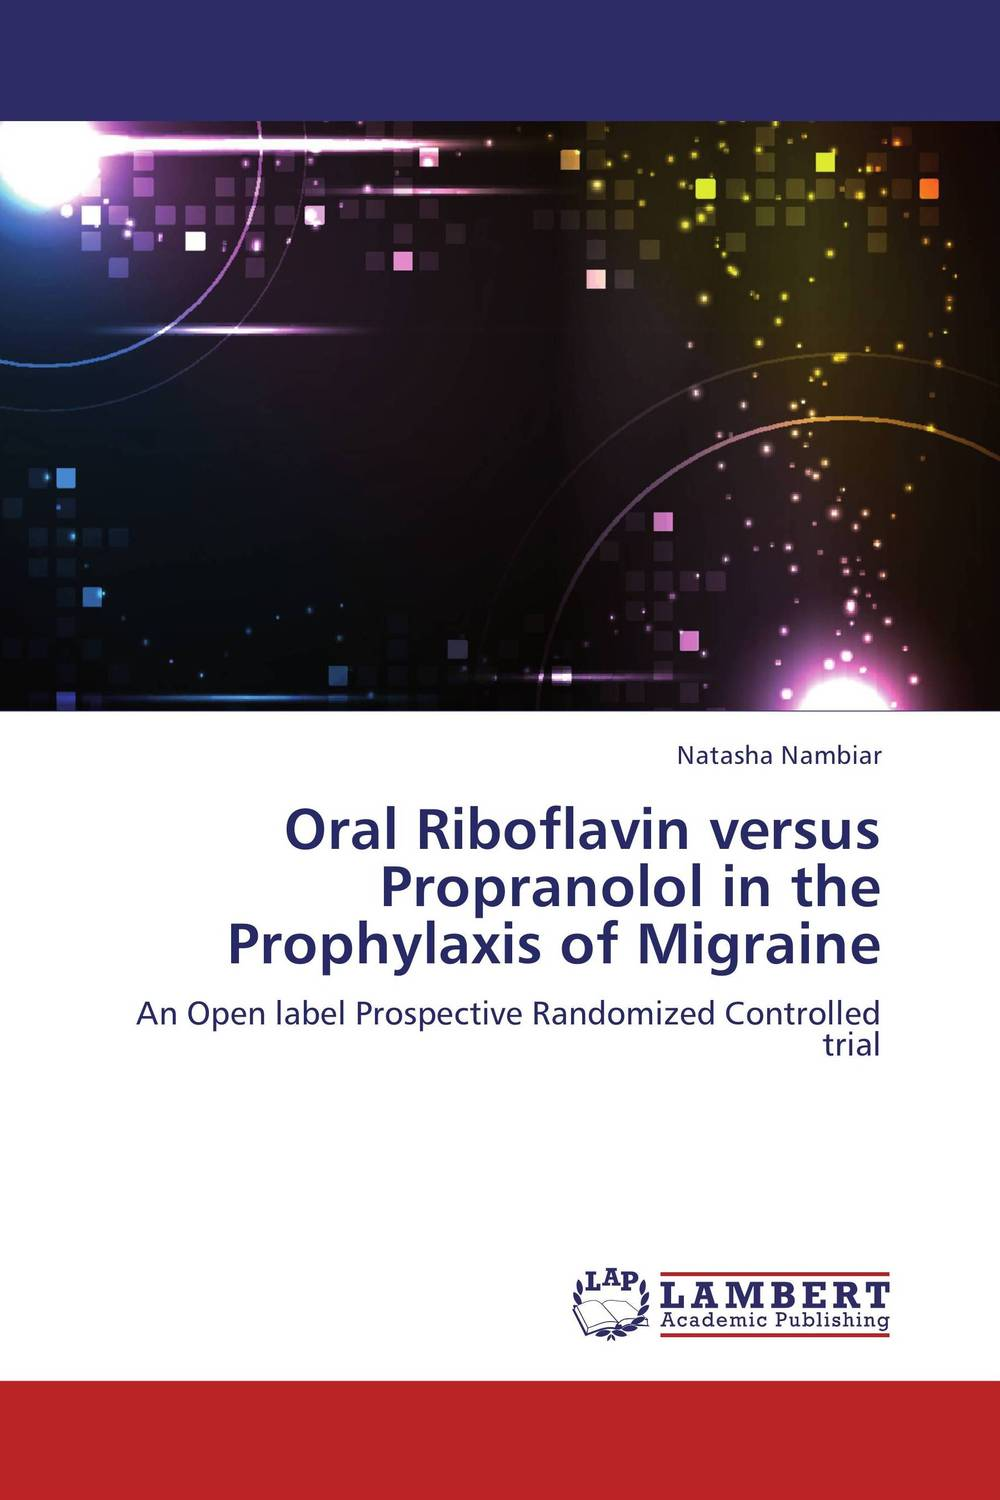 Oral Riboflavin versus Propranolol in the Prophylaxis of Migraine 100g vitamin b2 riboflavin food grade usa imported